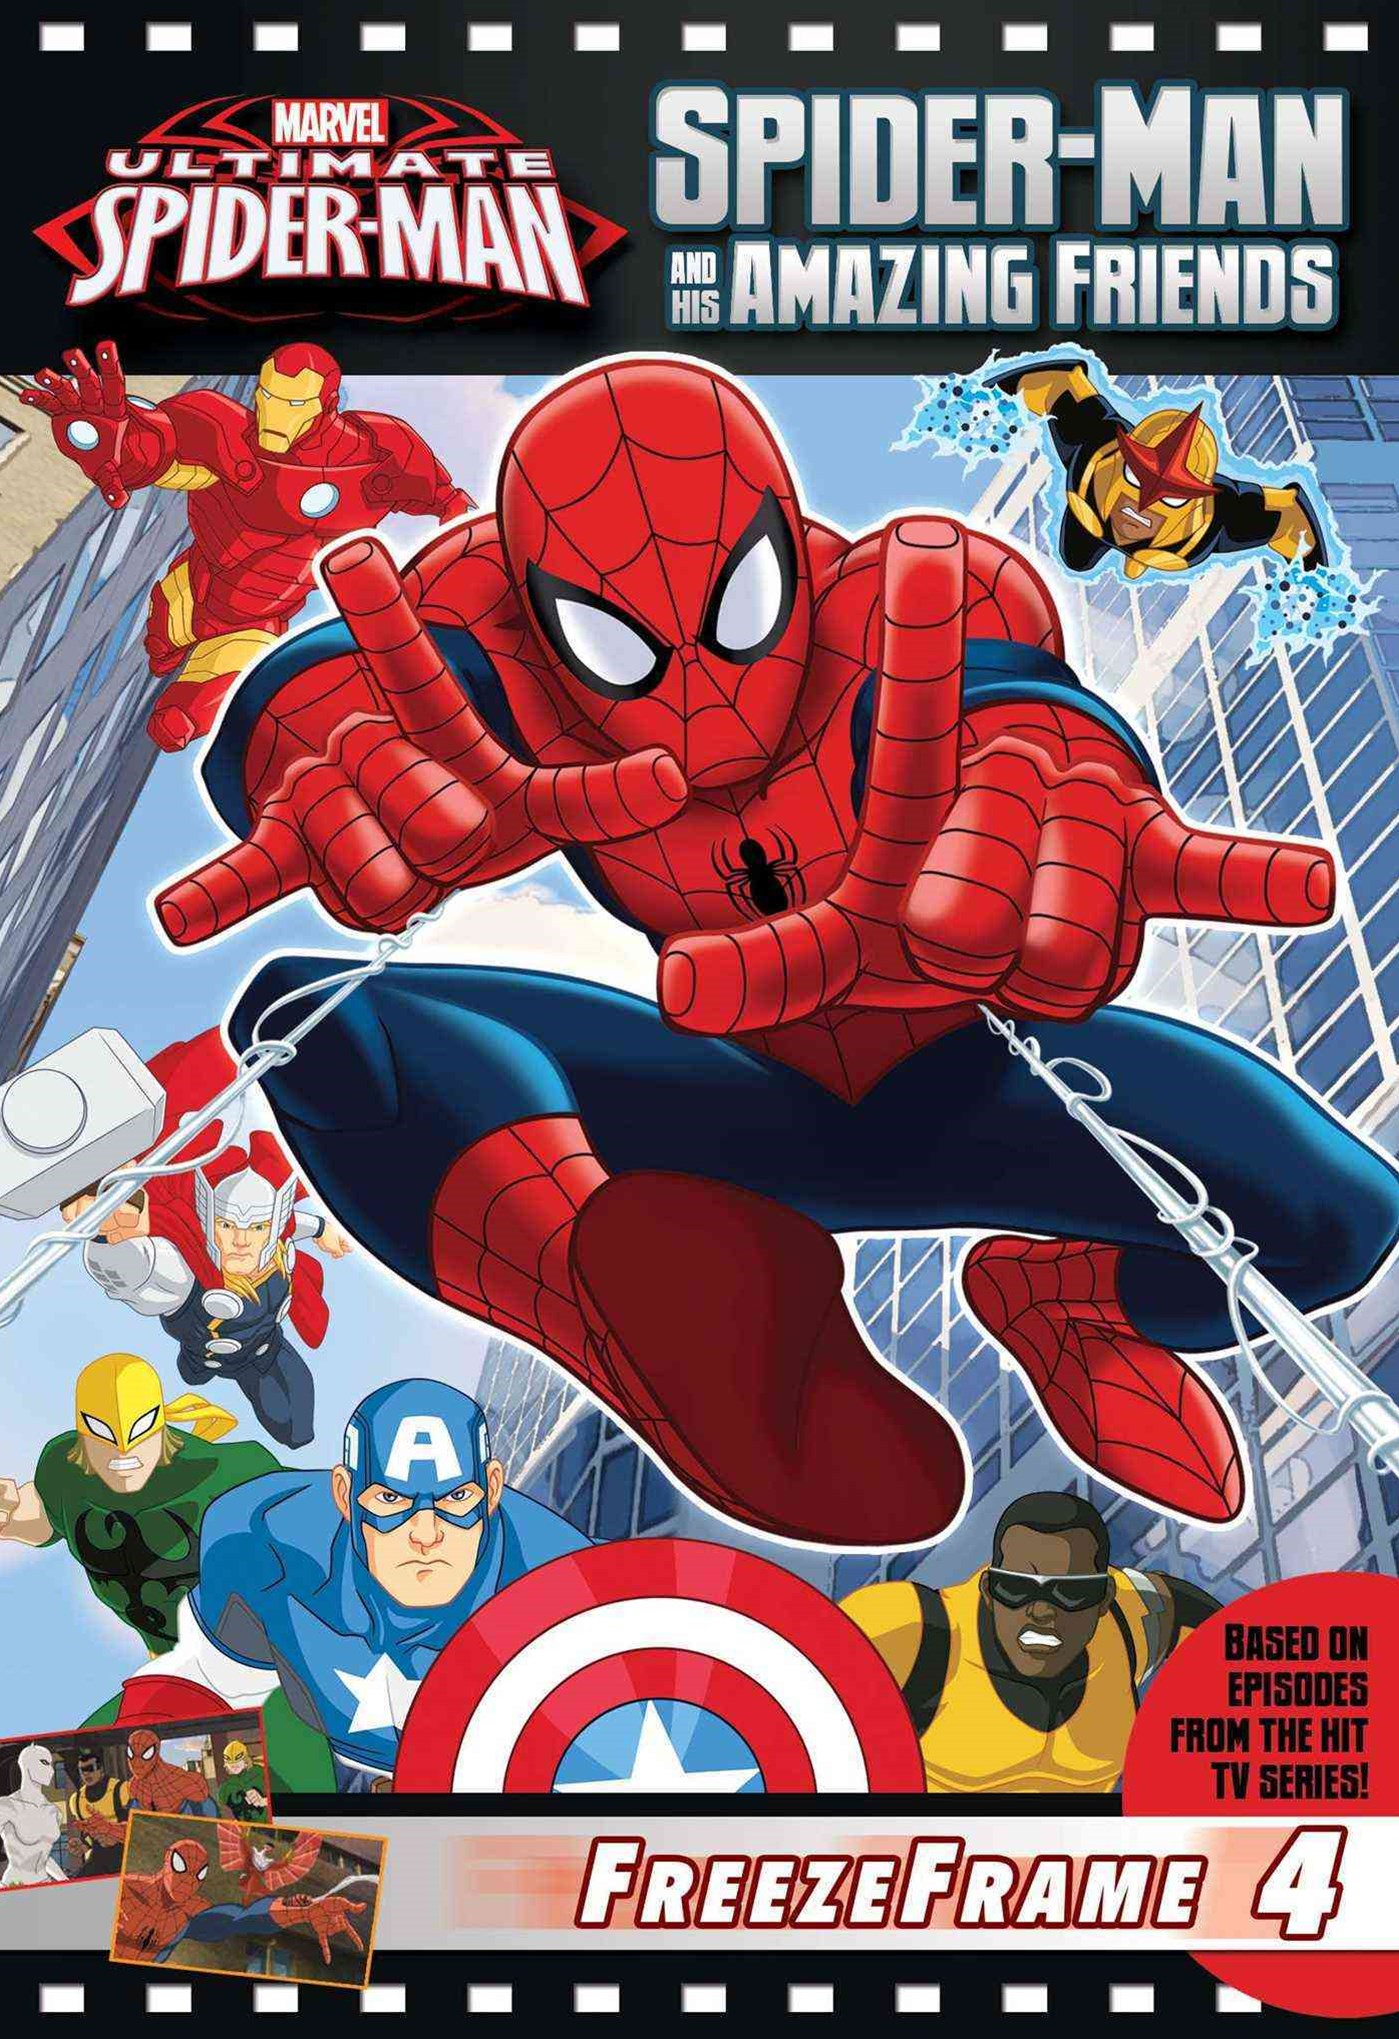 Marvel Ultimate Spider-Man: Spider-Man and His Amazing Friends